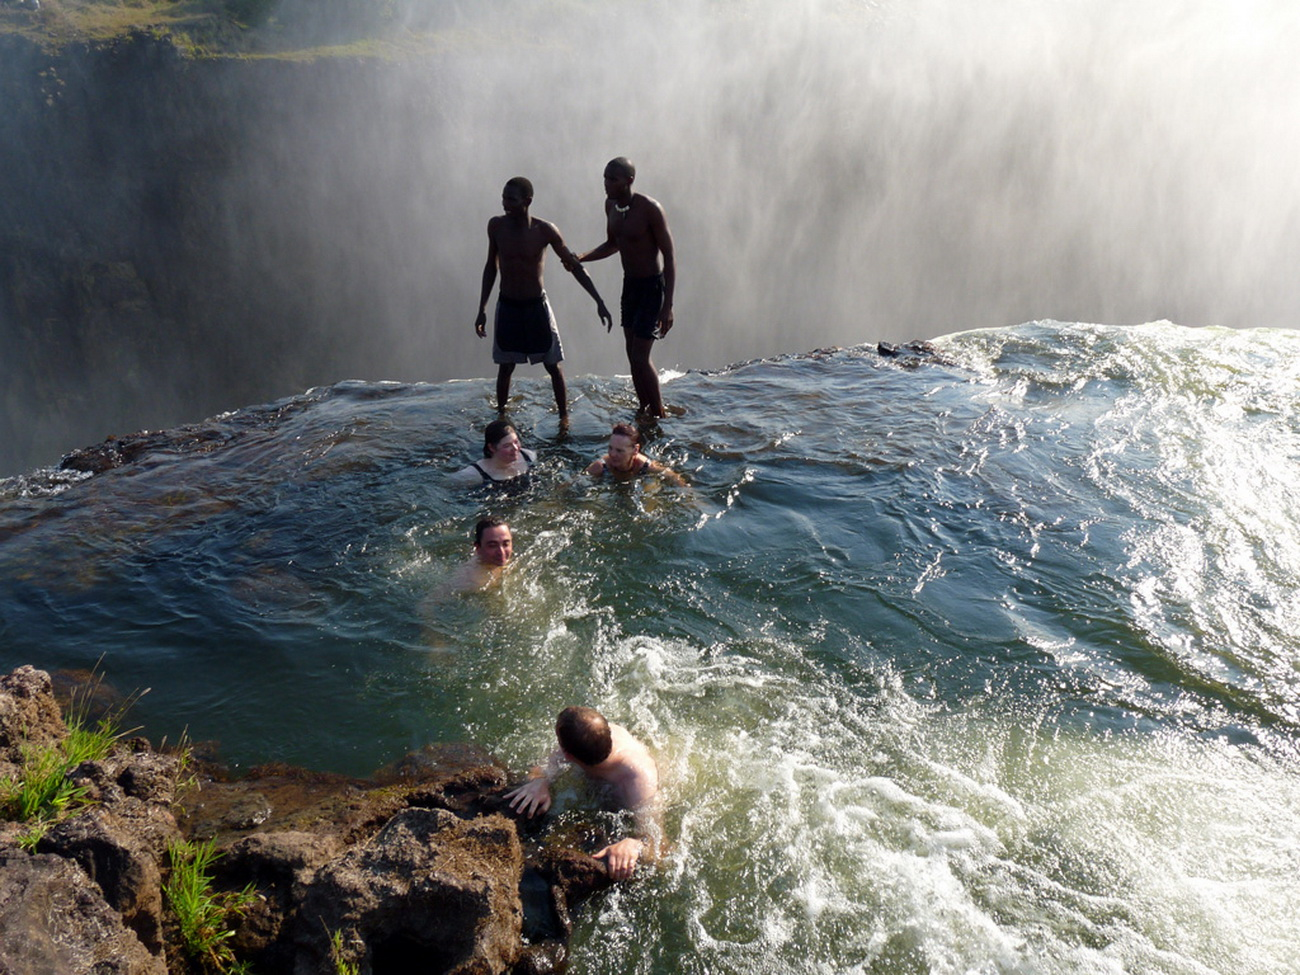 Victoria Falls Wallpapers High Resolution Worldimage4u Devil S Pool Victoria Falls Zambia